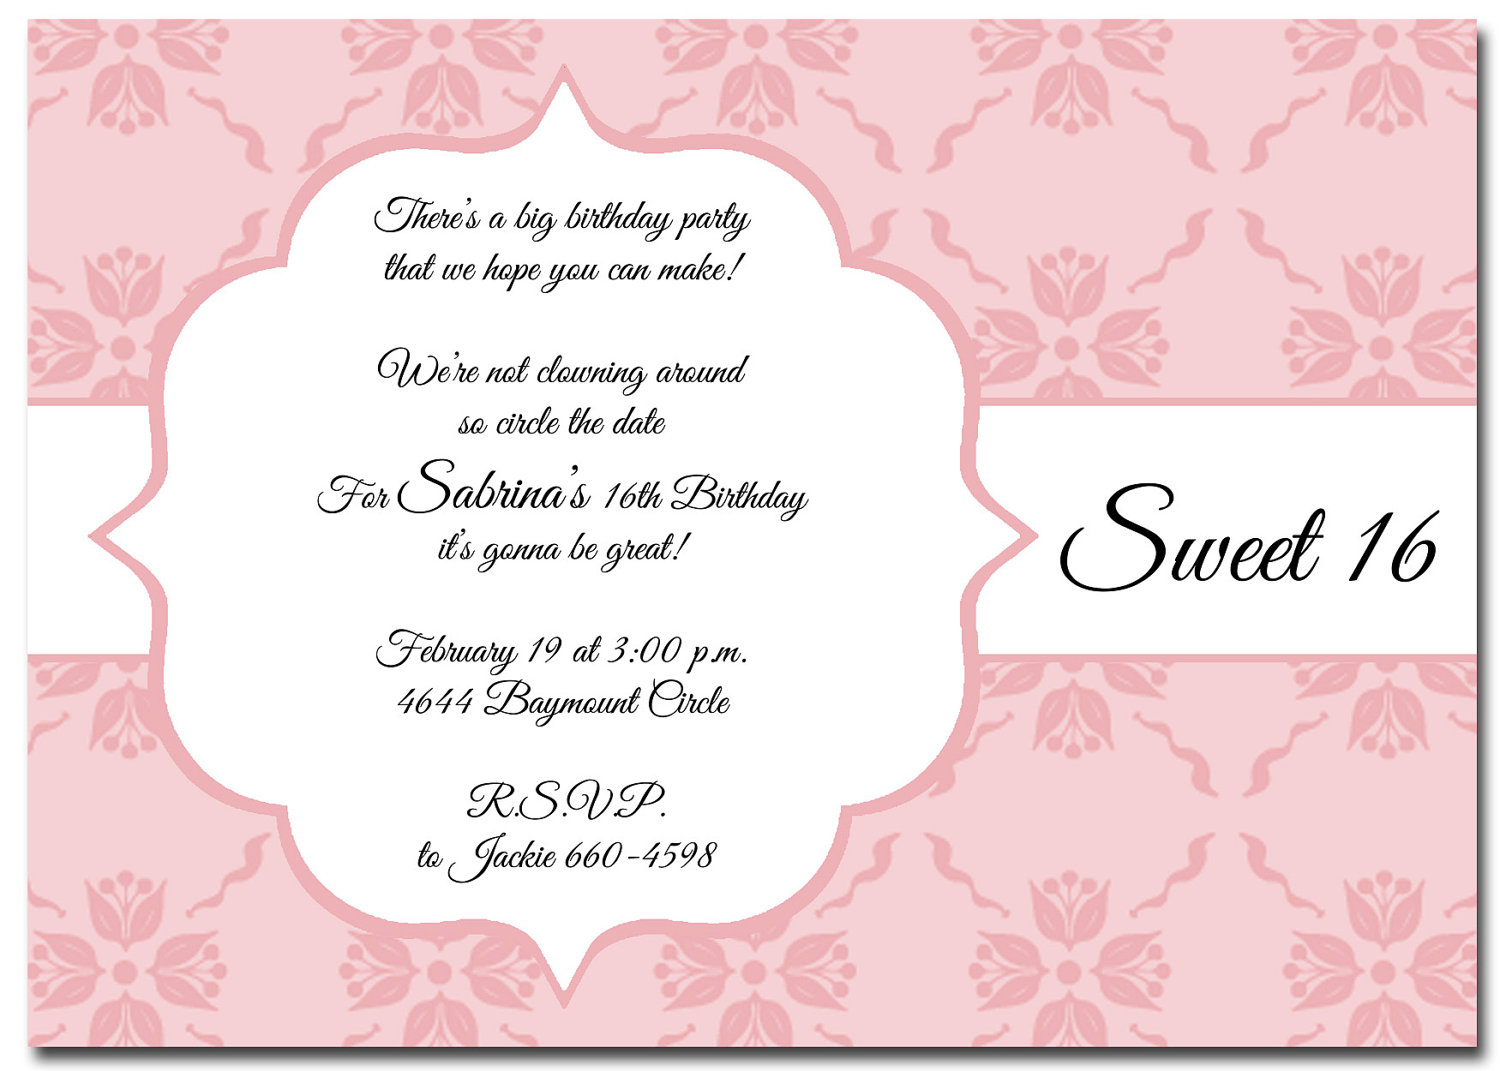 RileDesigns | Elegant Frame Birthday Invitations | Online Store ...